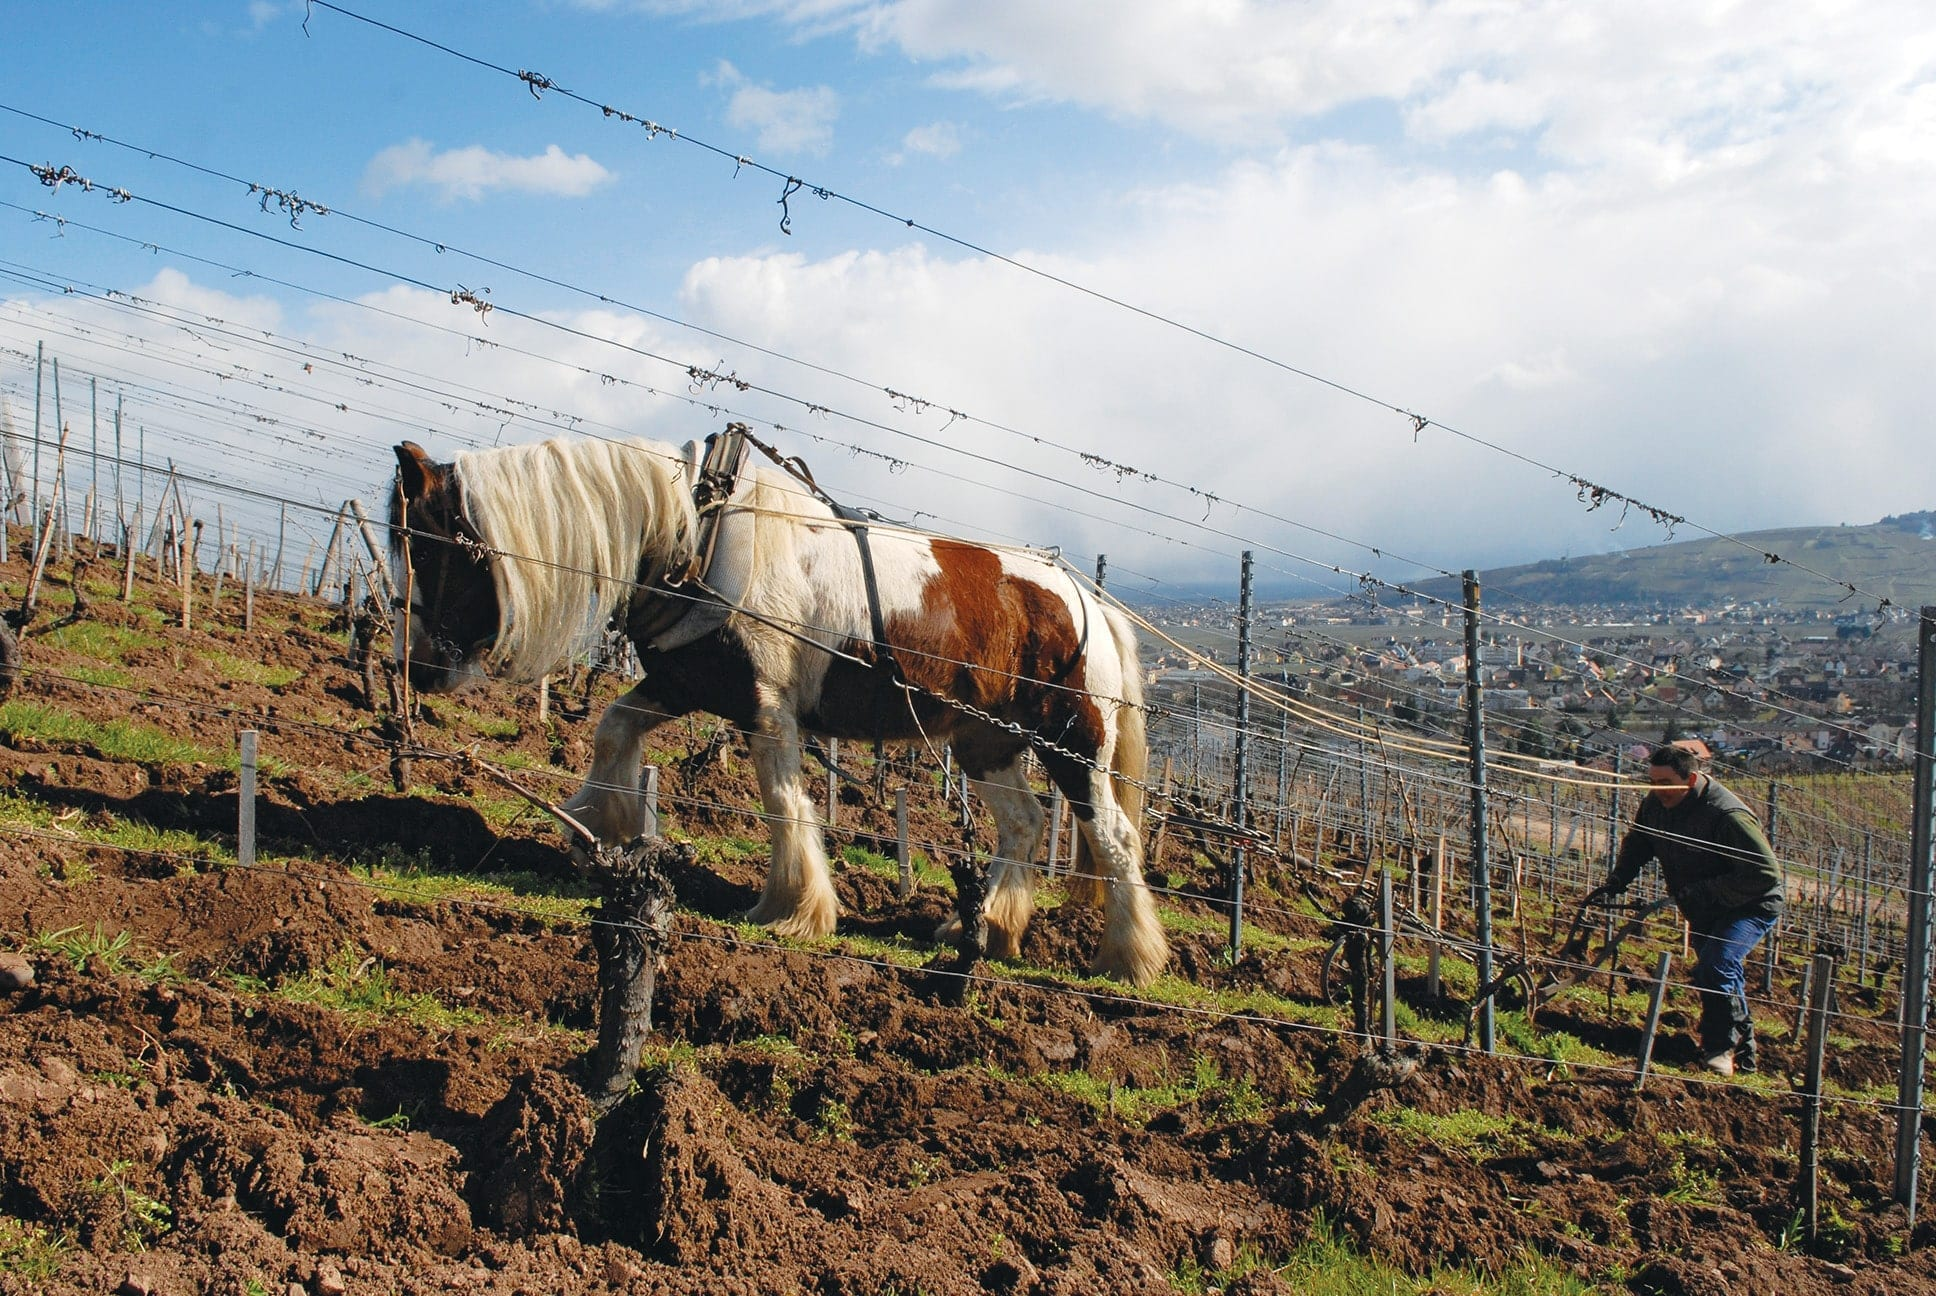 Plowing with a Horse at Domaine Zind-Humbrecht